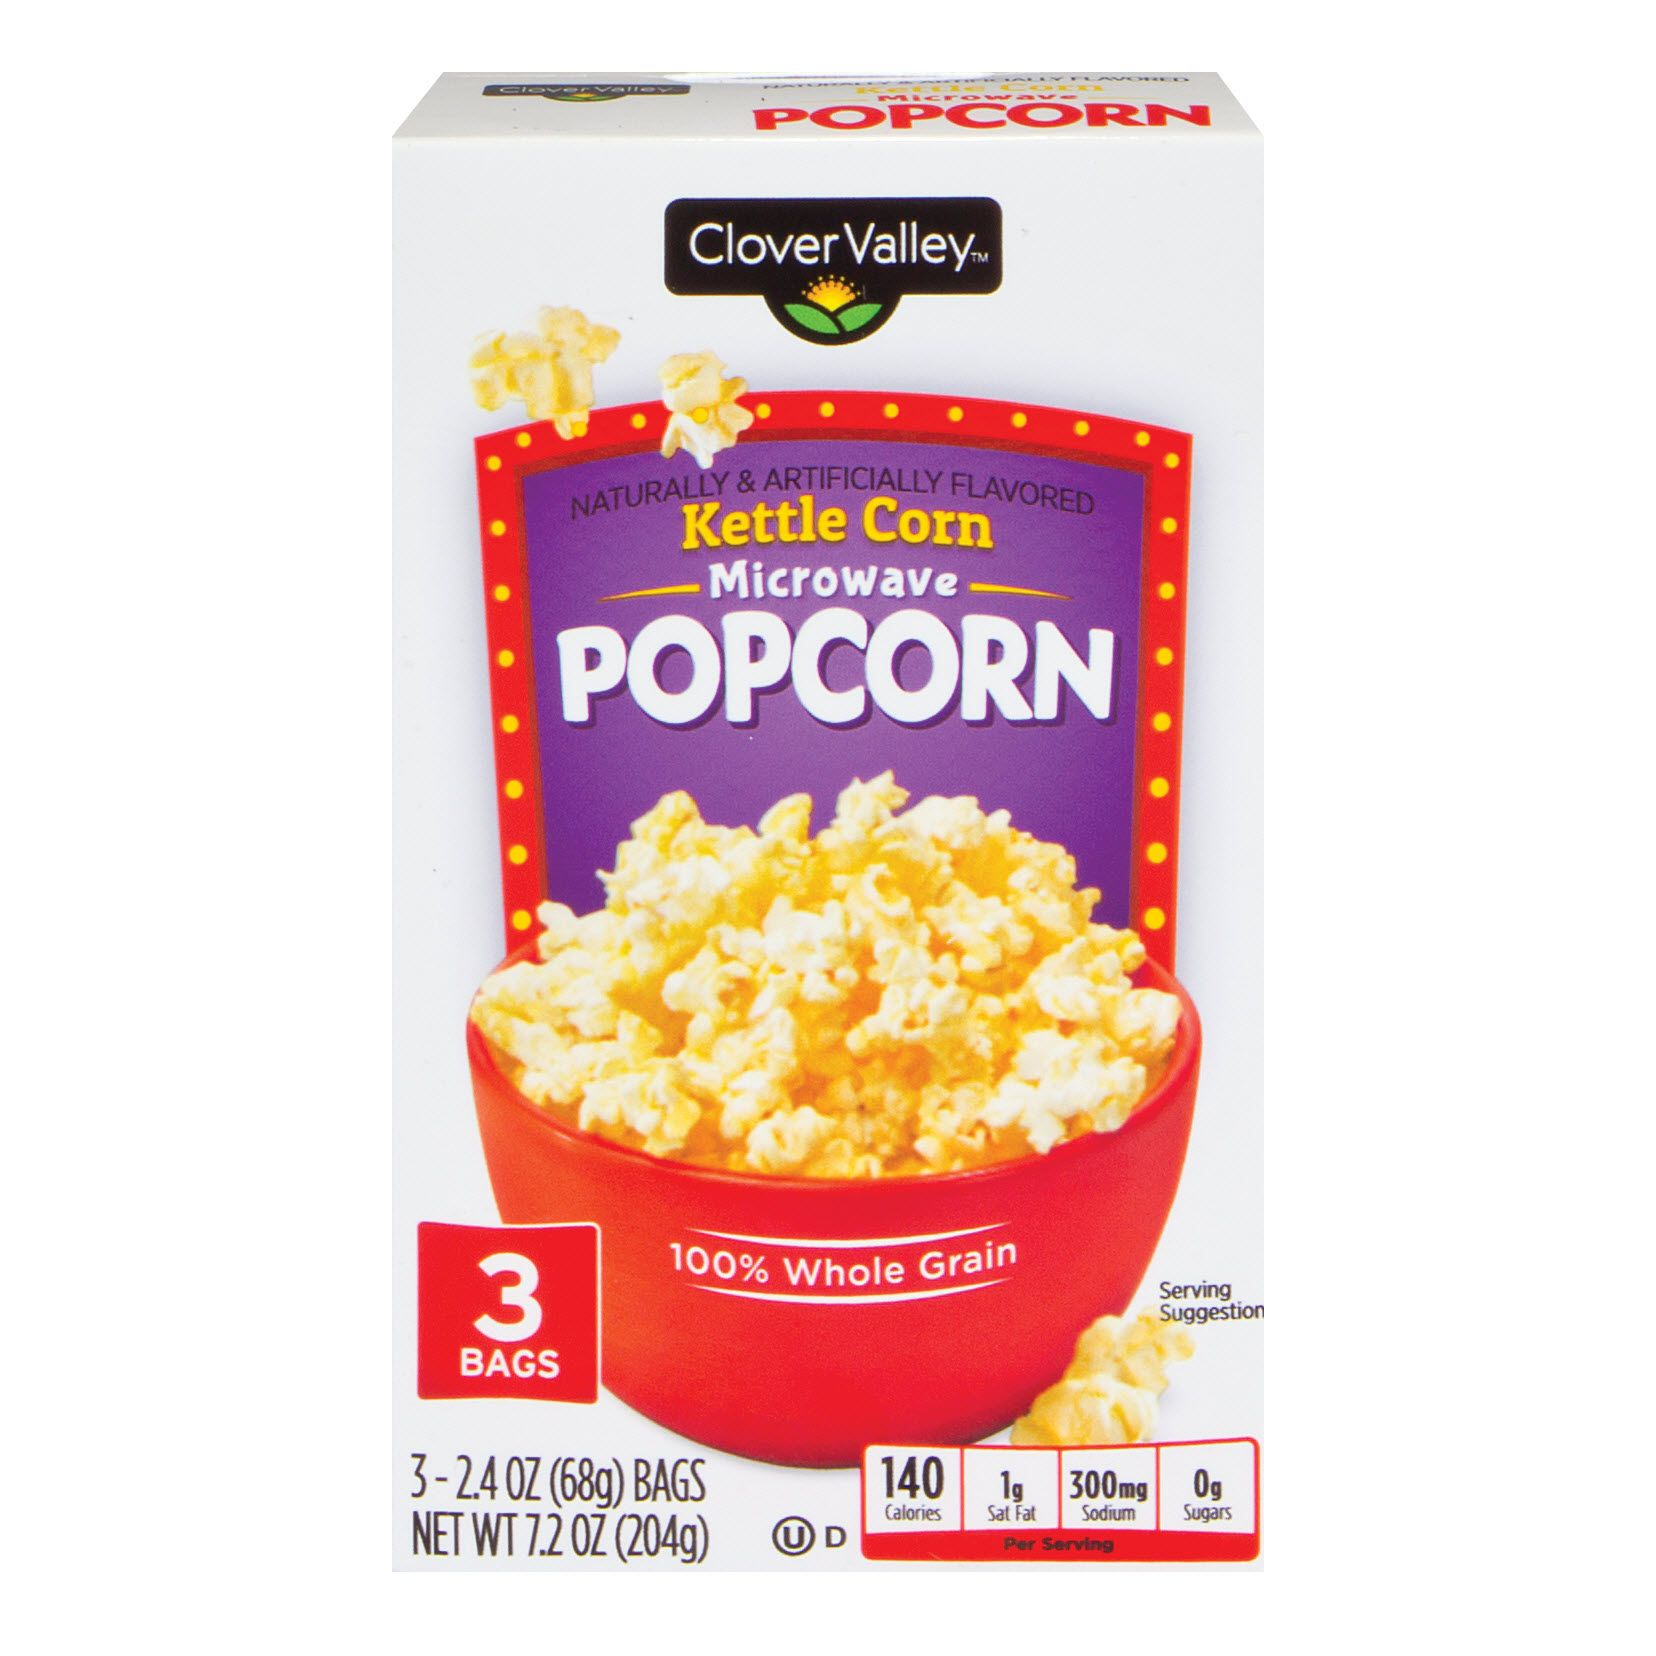 Clover Valley Kettle Corn Microwave Popcorn, 3 Pack